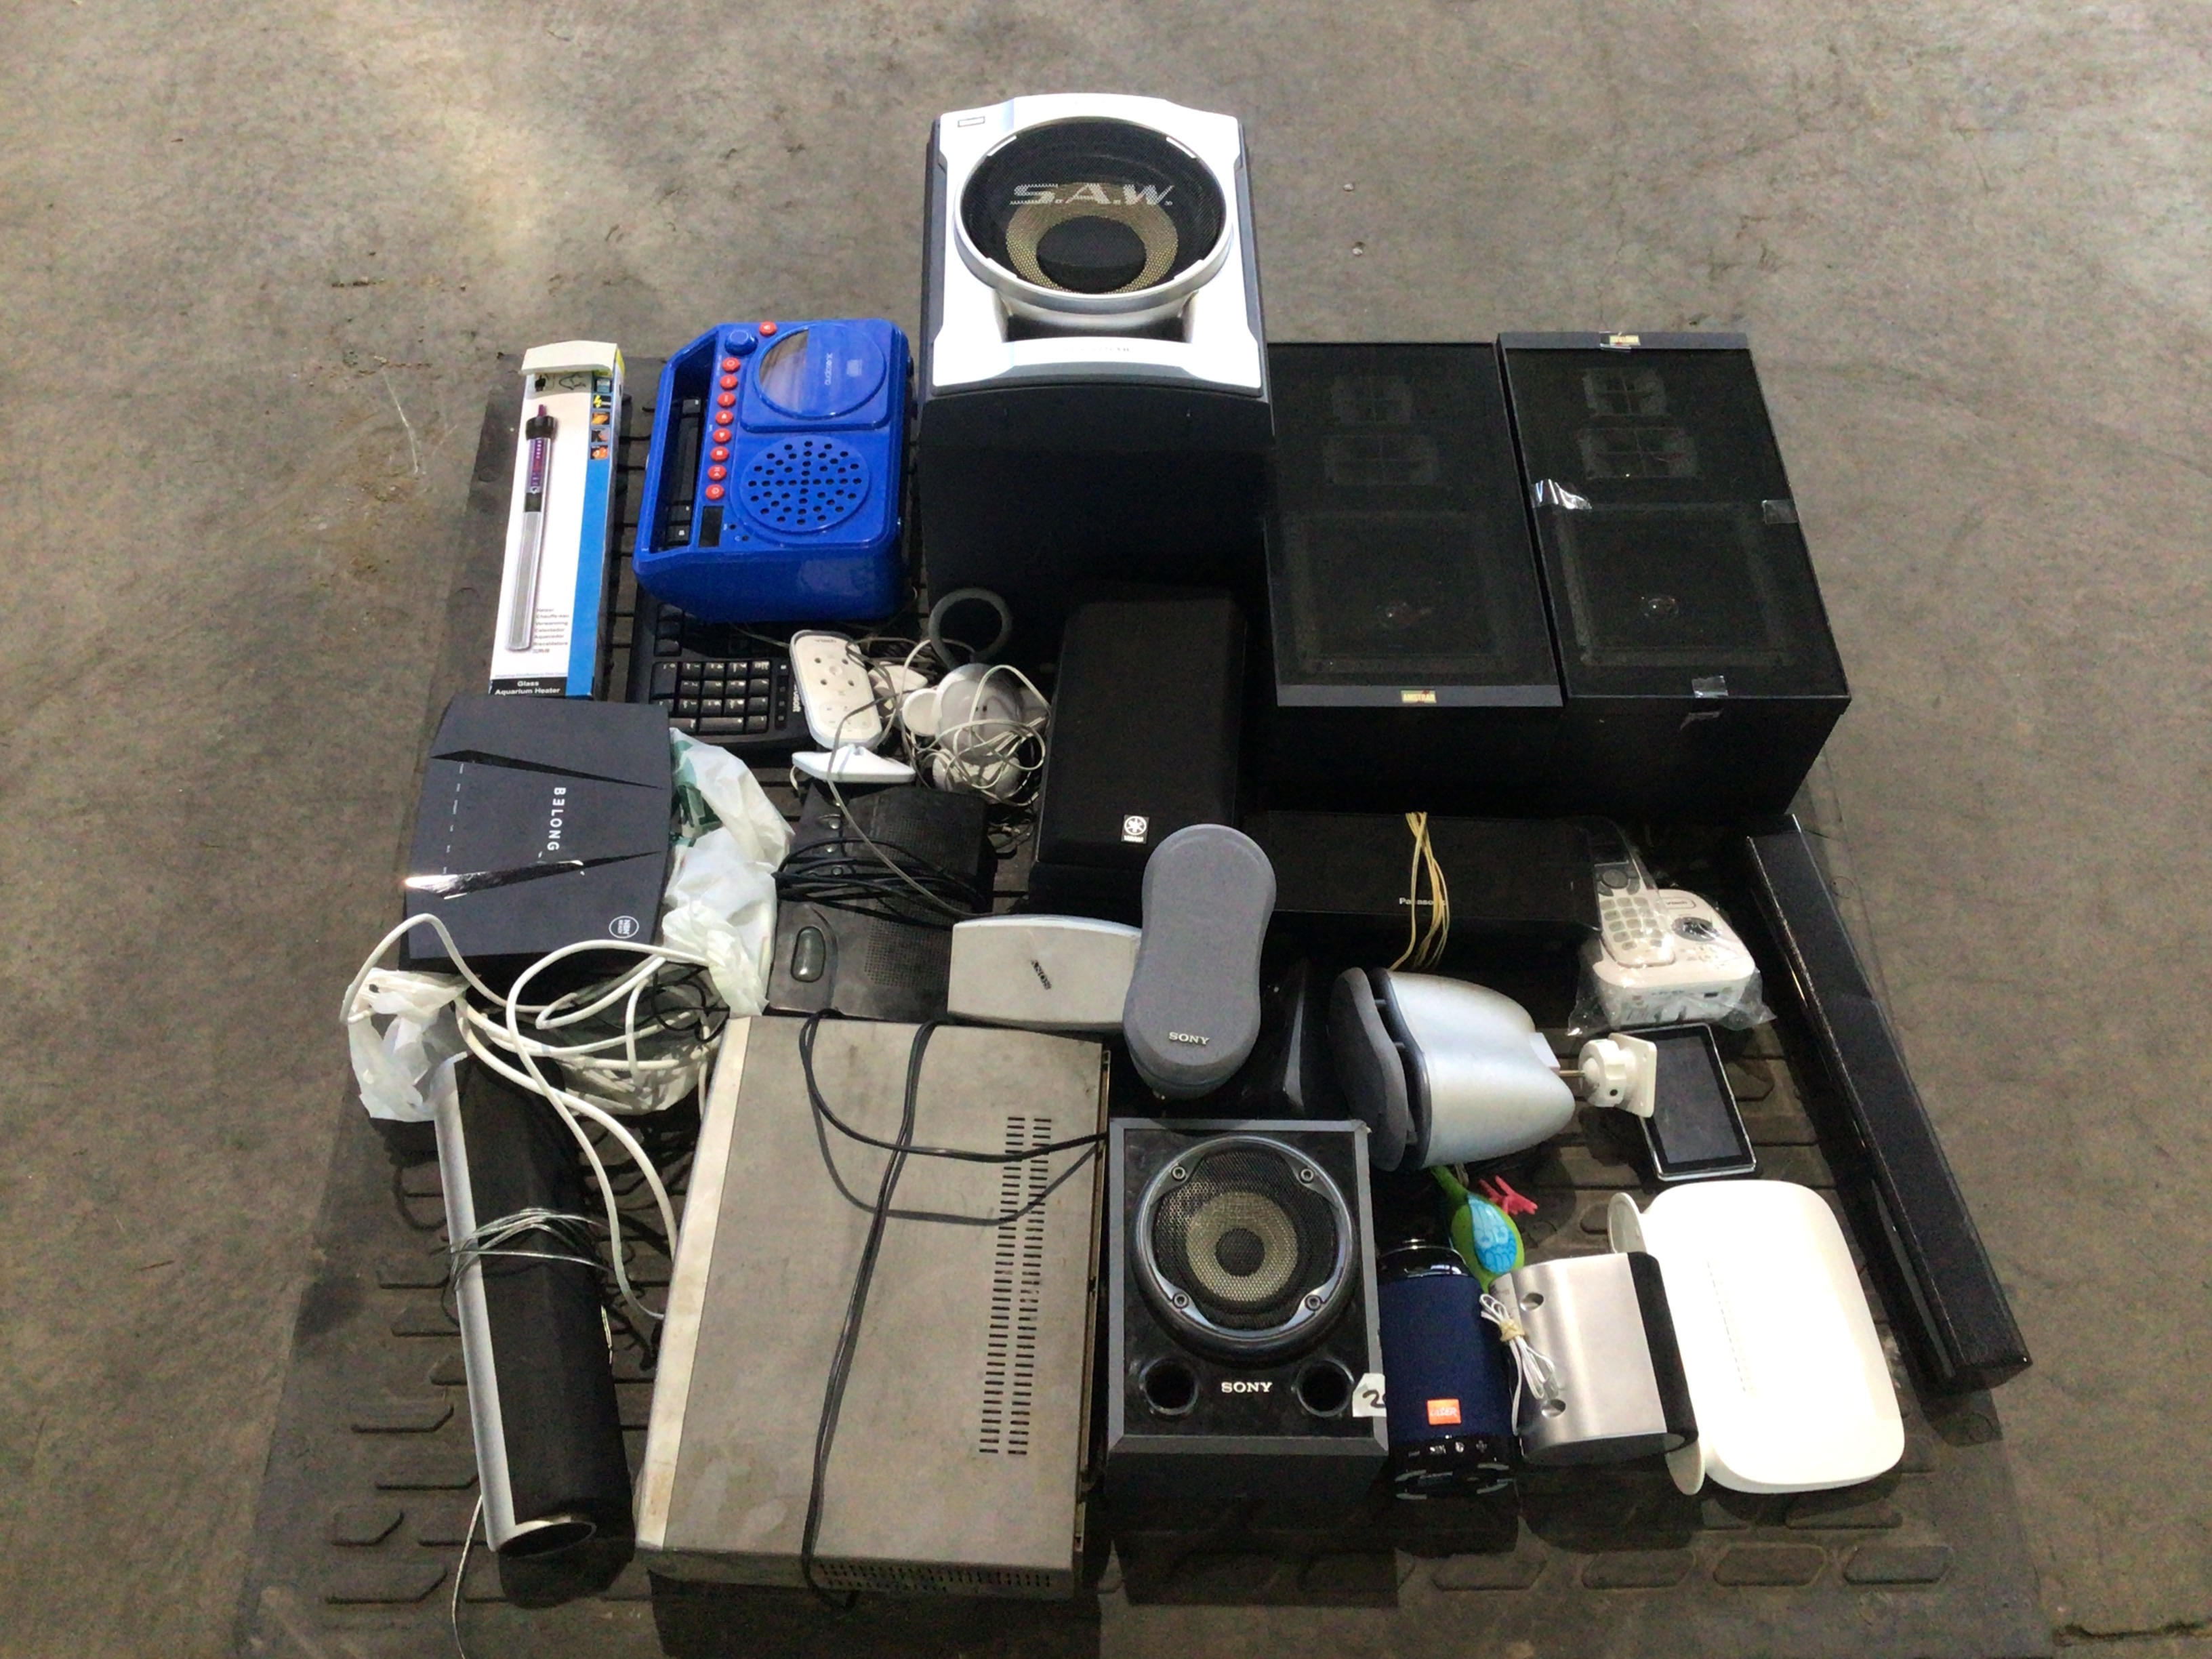 Speakers and Electrical Equipment.